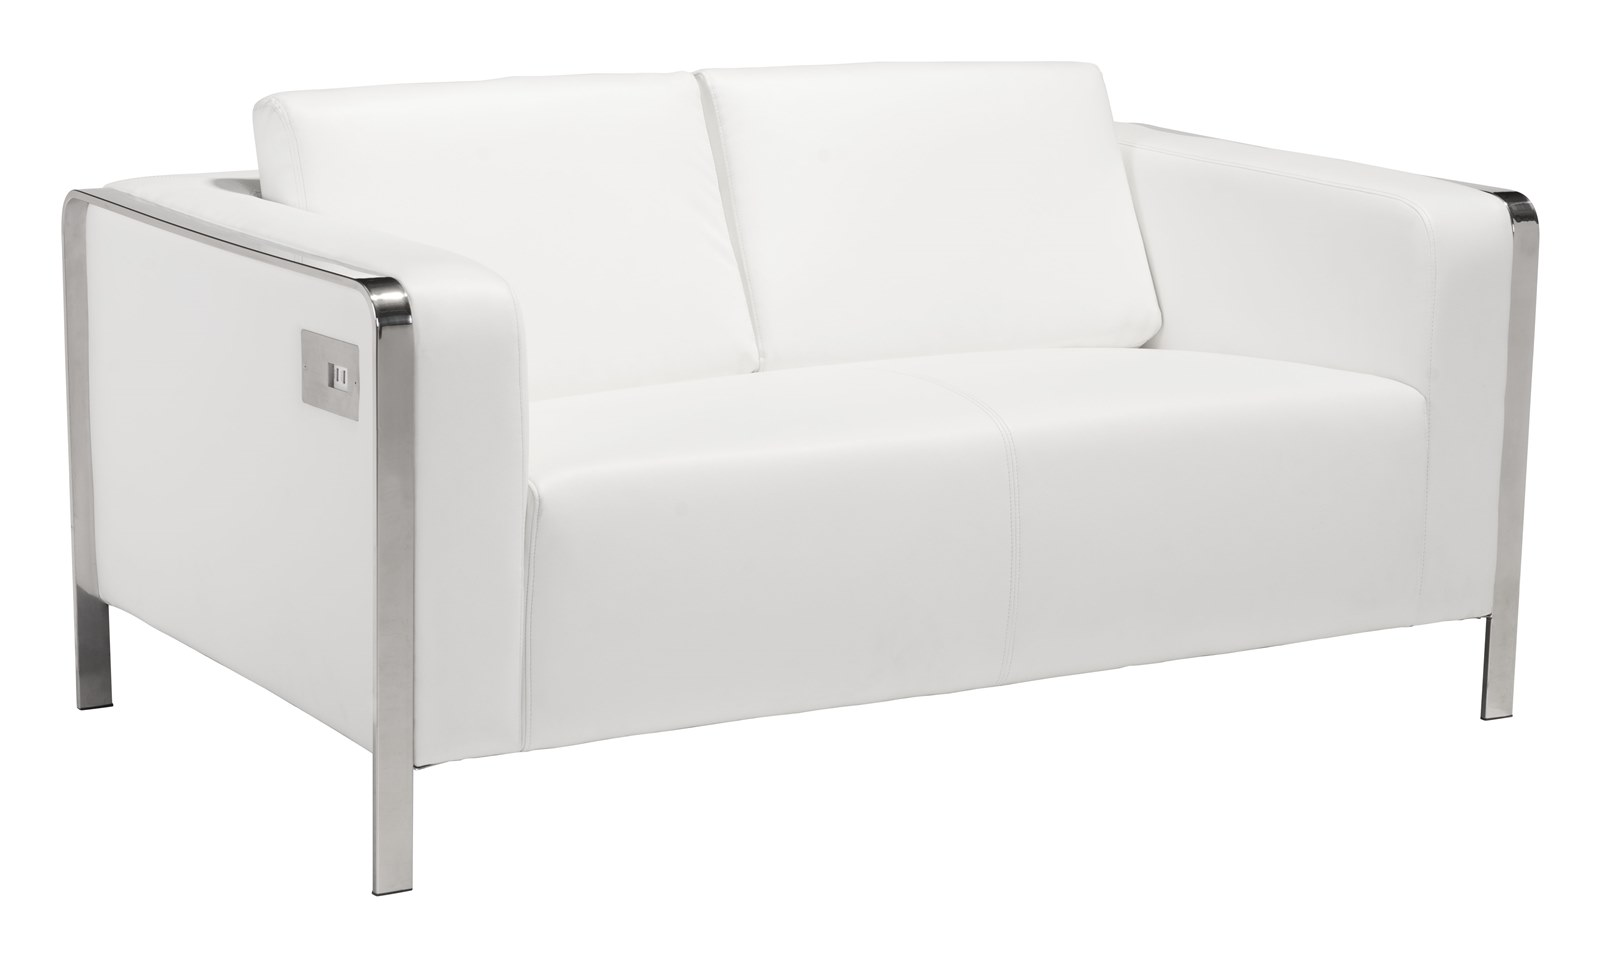 Merveilleux Modern Contemporary Urban Living Room Office Loveseat Sofa, White   Faux  Leather Leatherette Stainless Steel